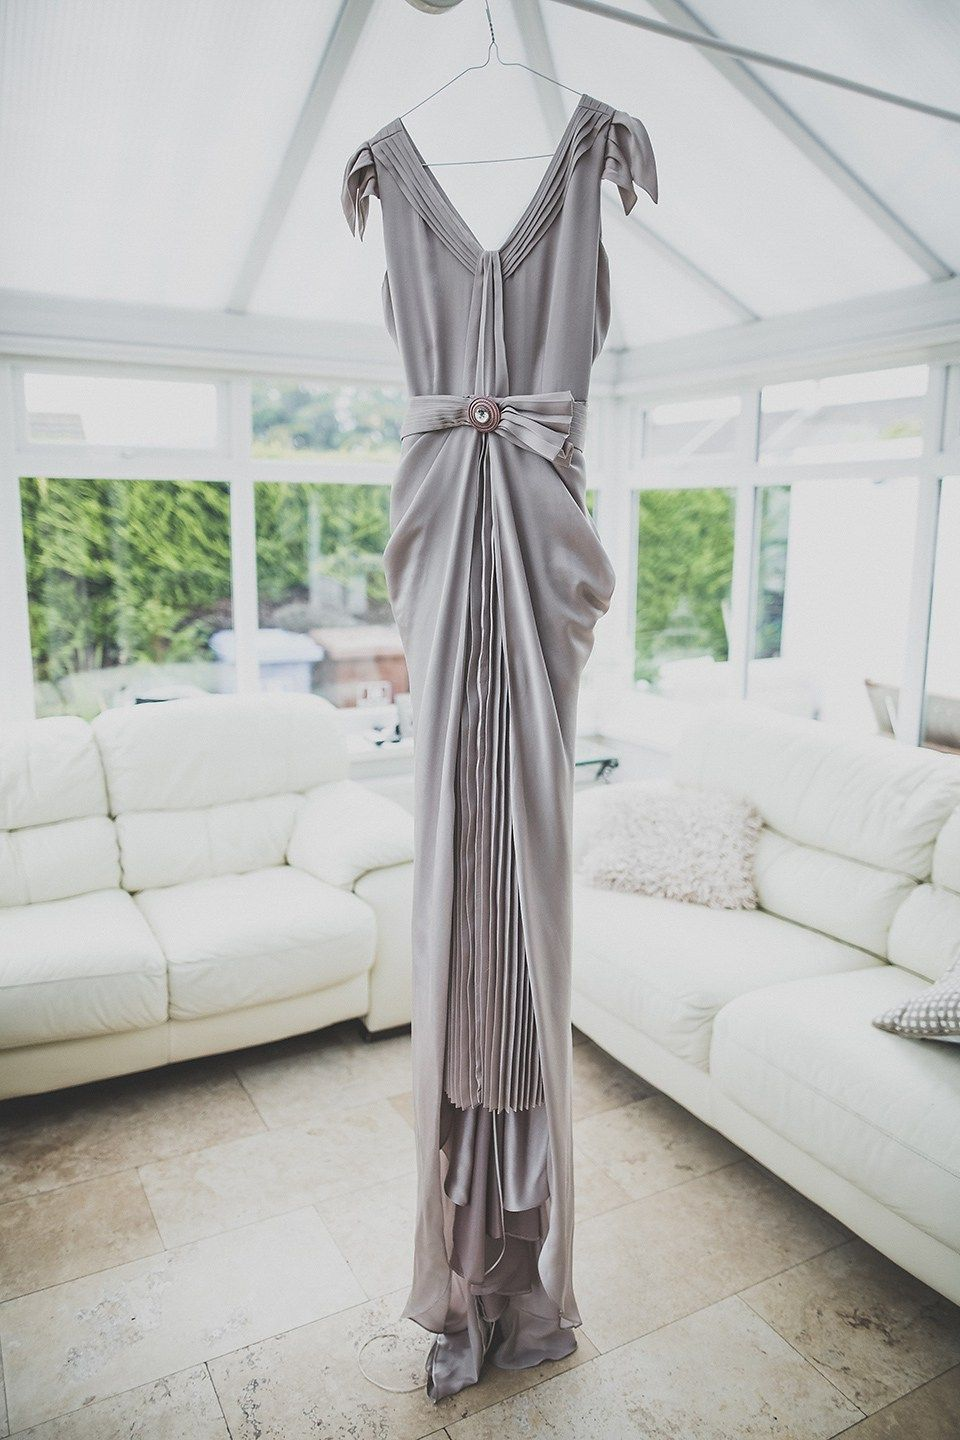 Tara wore a pleated dress in silk with a floral veil for her beautiful coastal wedding at Cushendall Golf Club in Northern Ireland. Photography by Mary McQuillan.